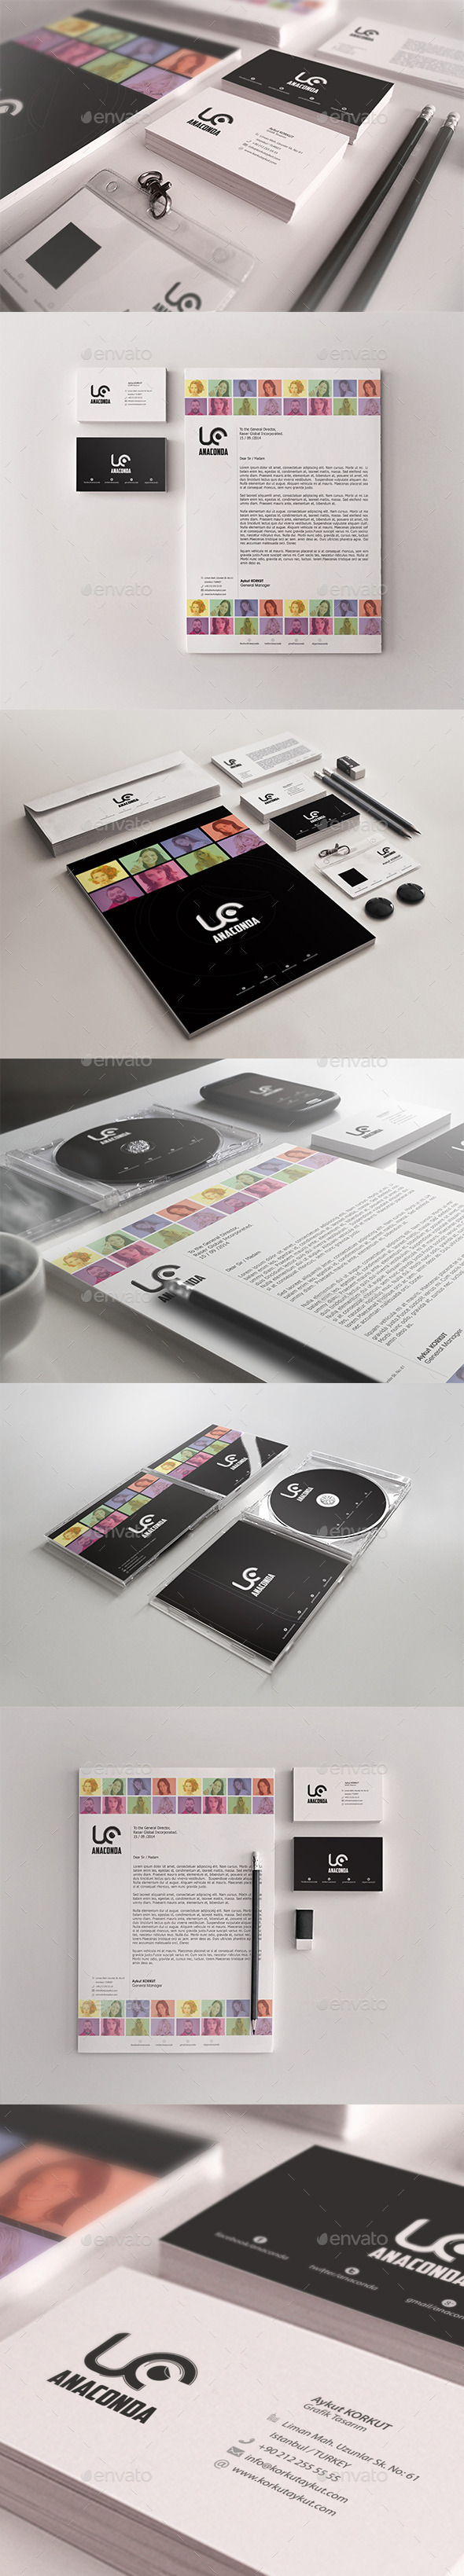 Anaconda Corporate Identity Package